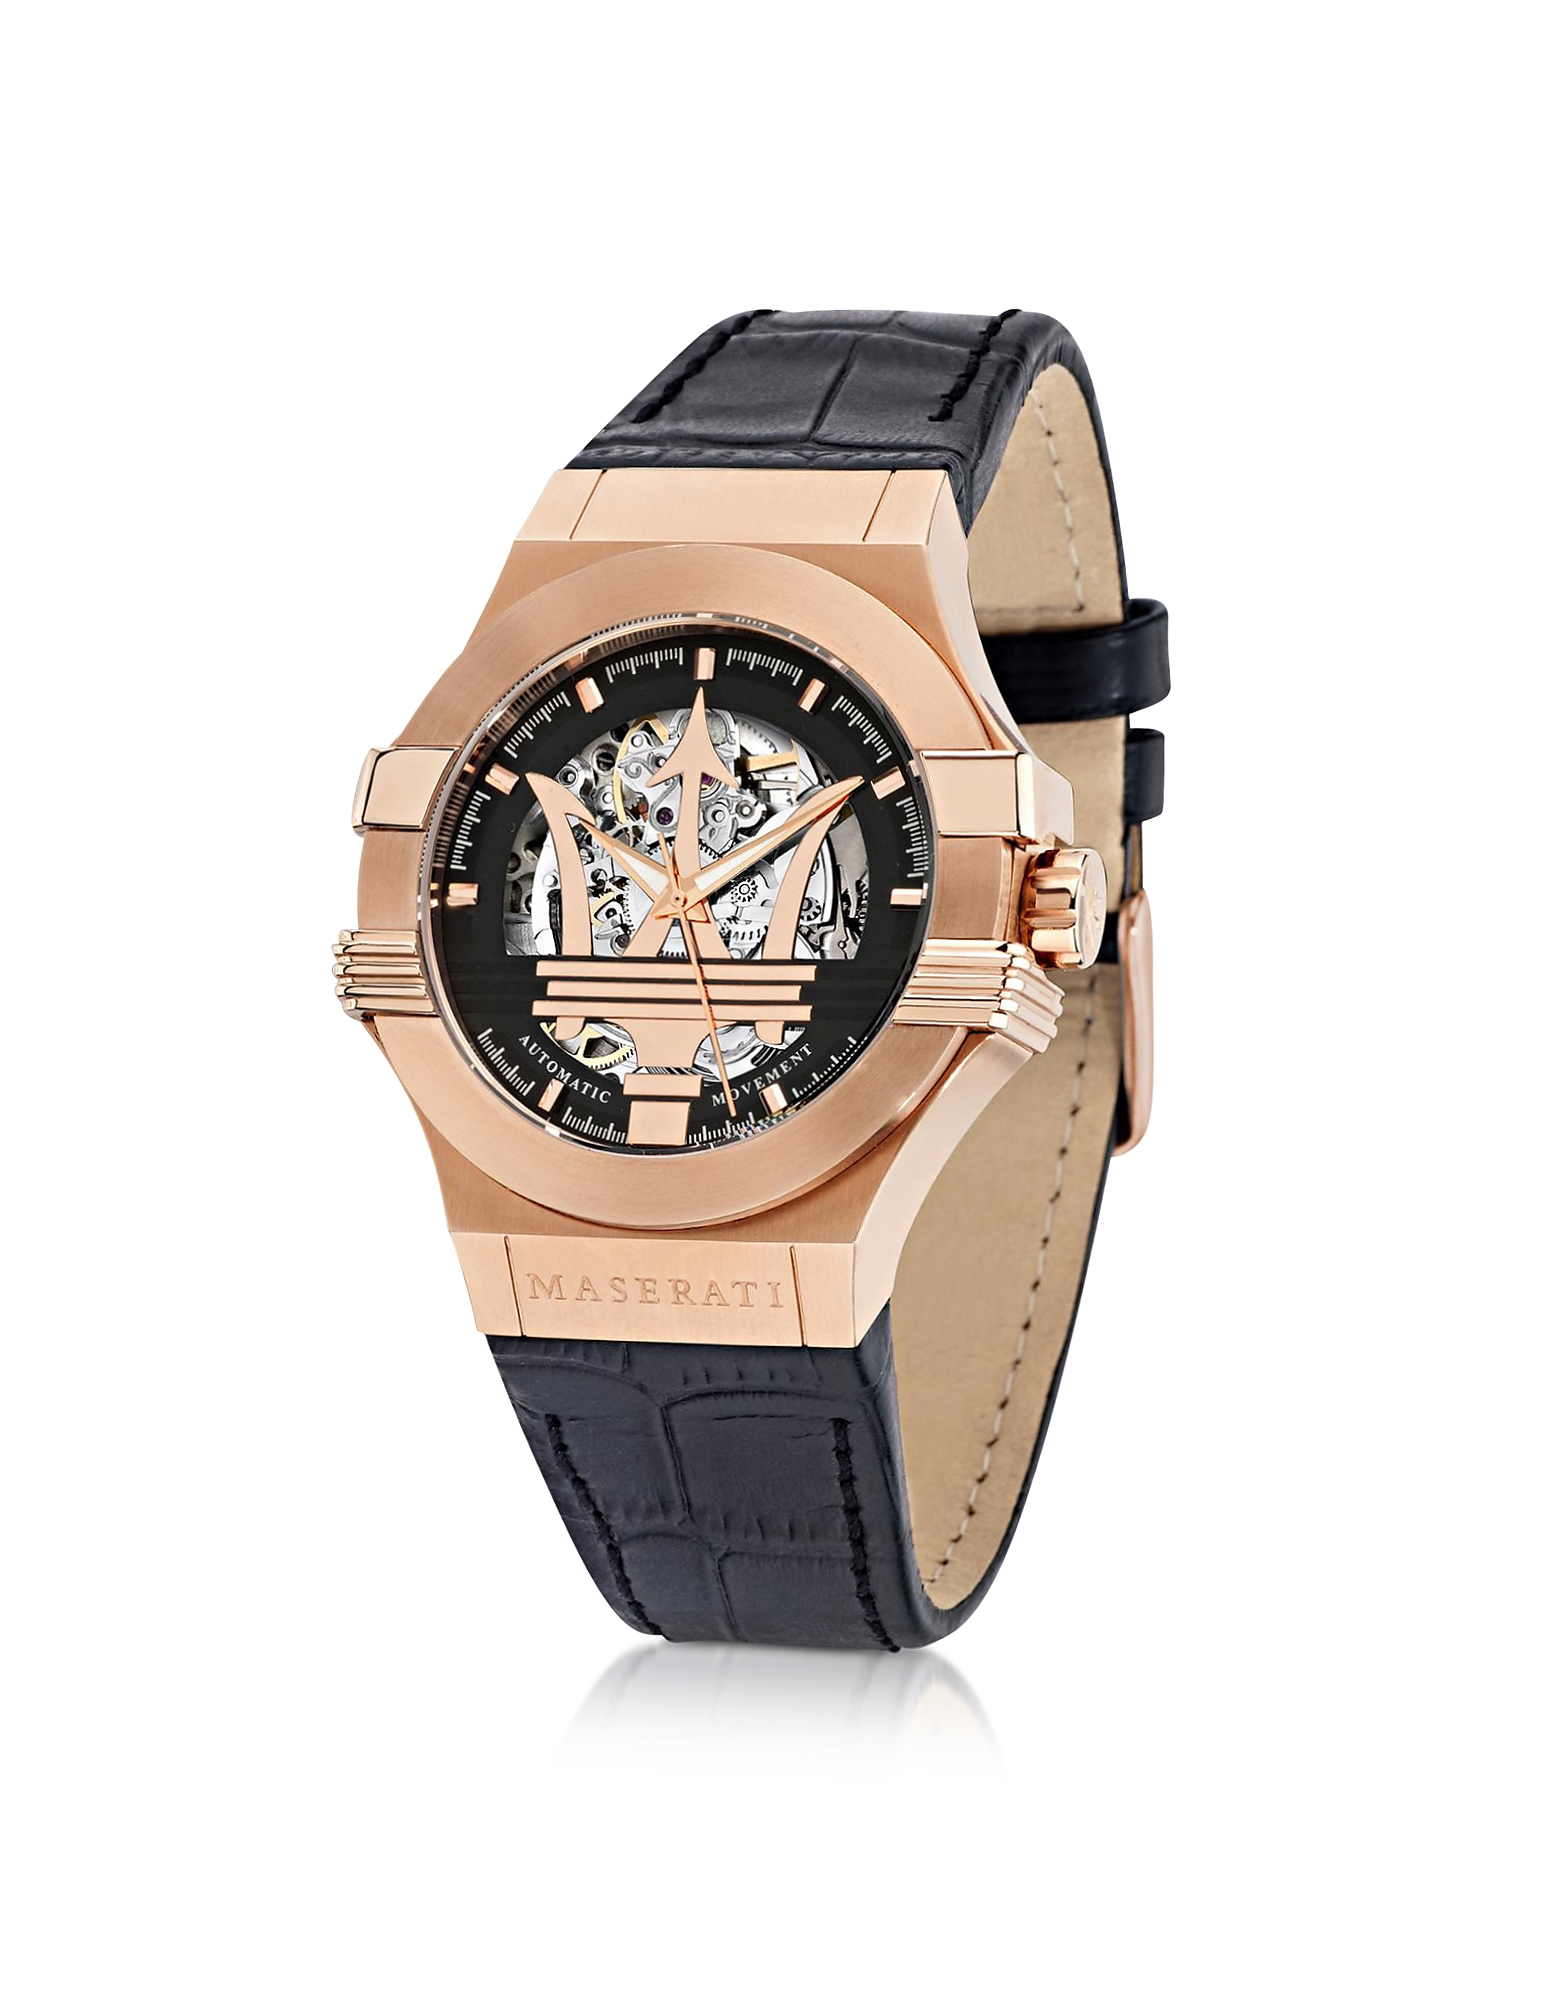 Maserati Men's Watches, Potenza Auto Black Dial and Leather Strap Rose Gold Tone Men's Watch